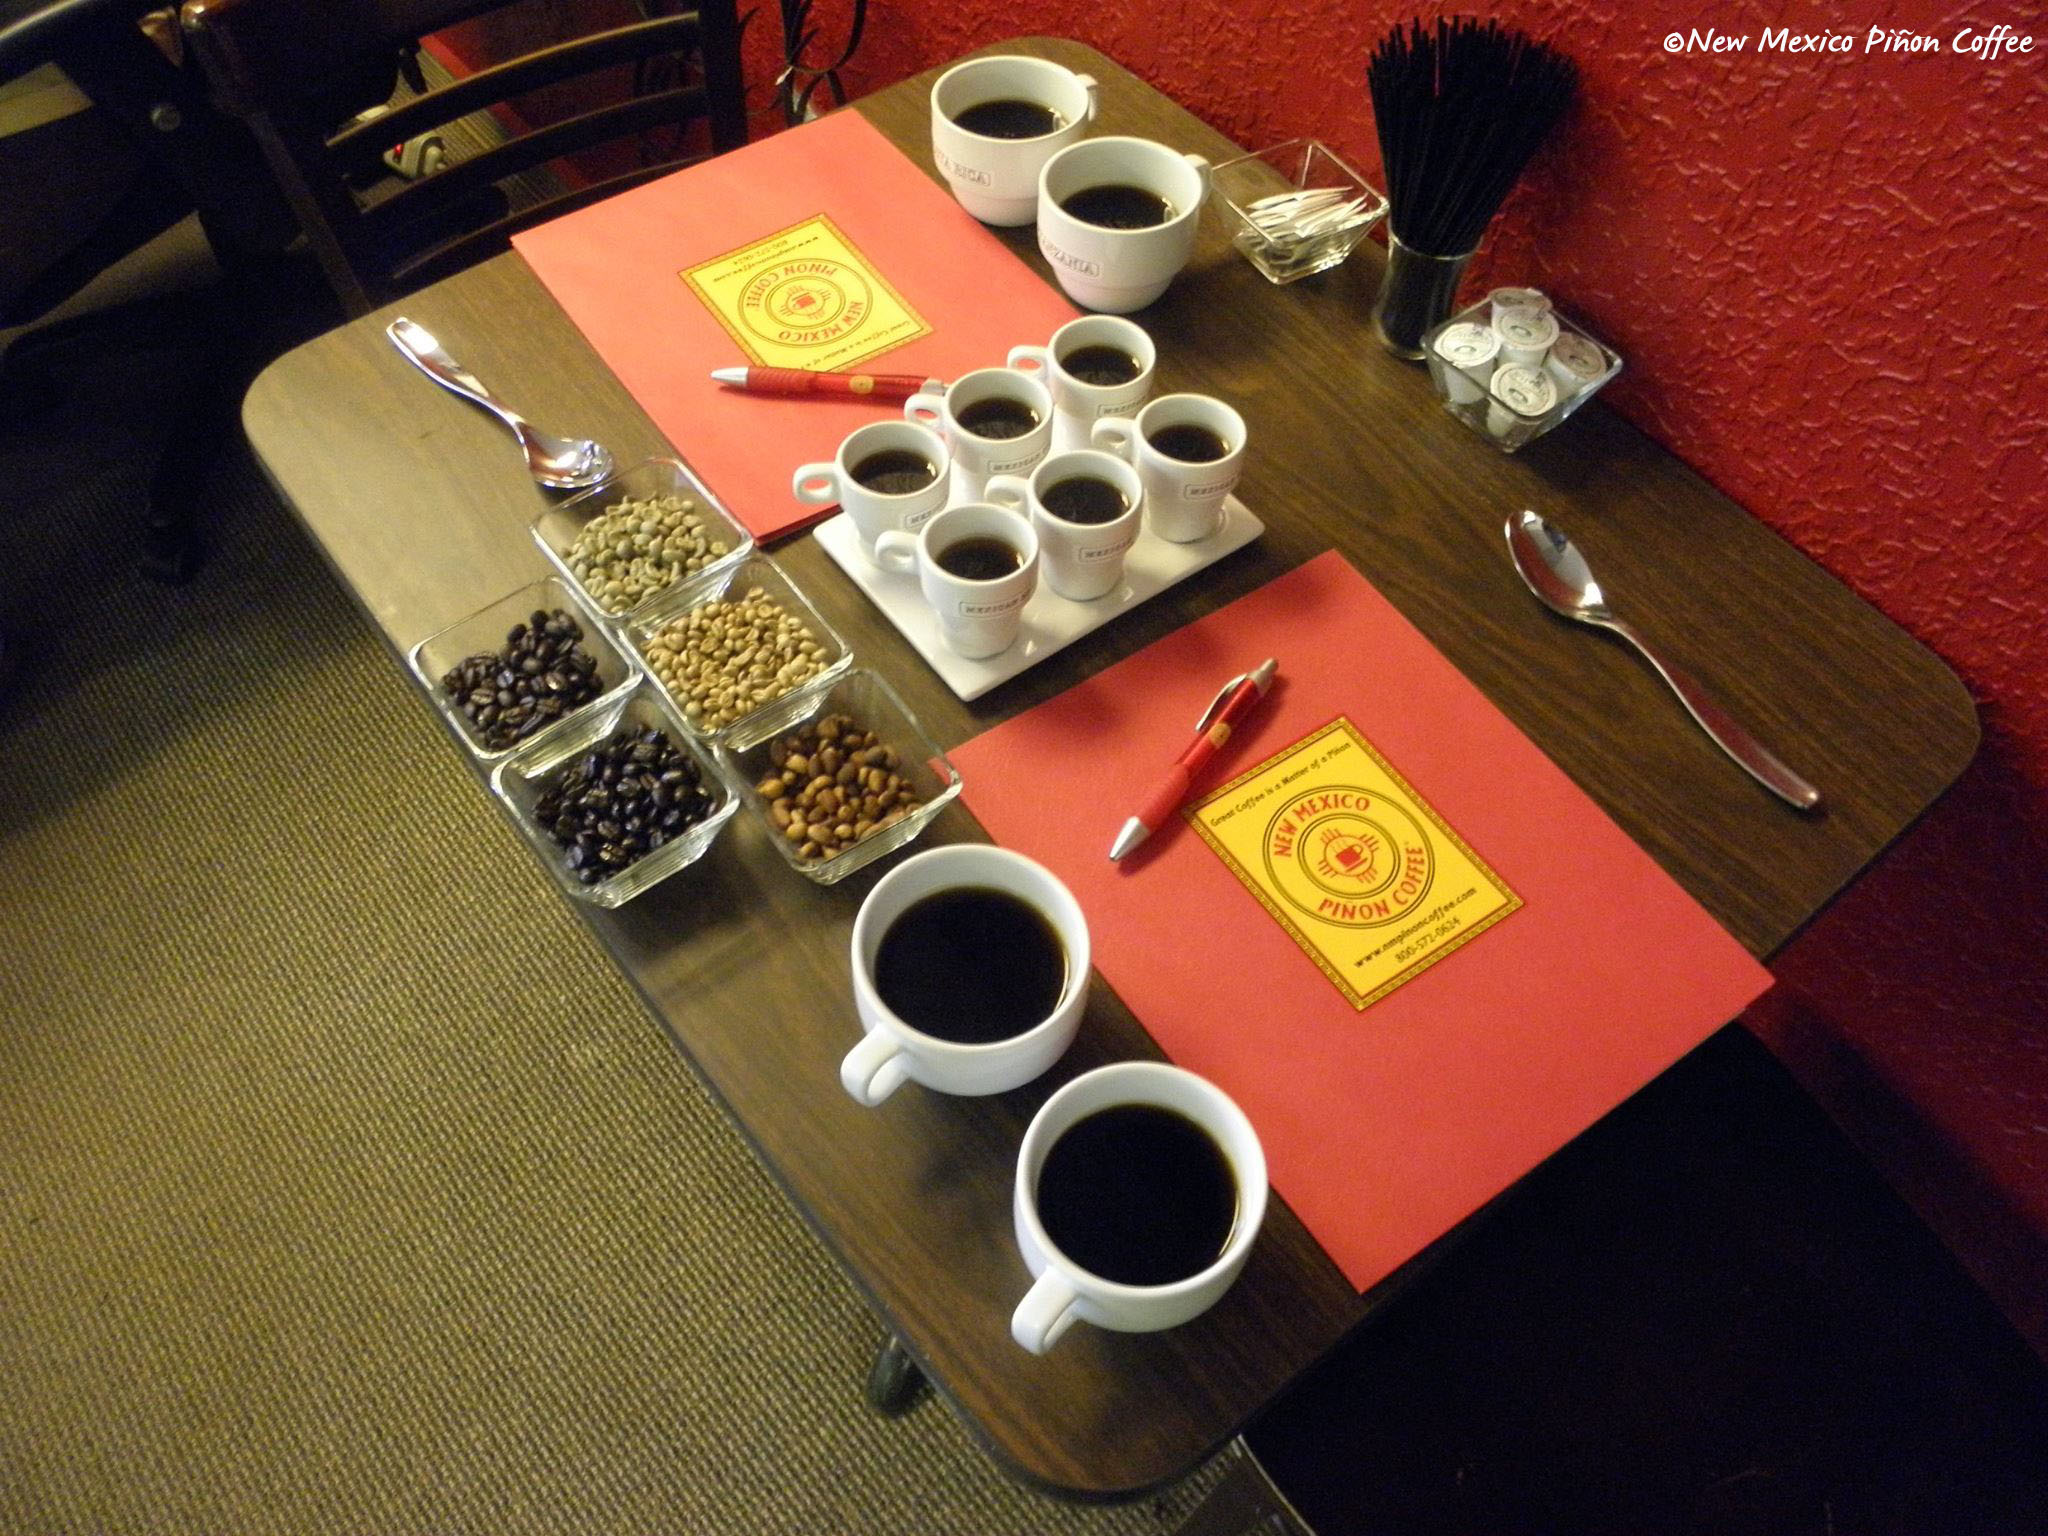 New Mexico Piñon Coffee tasting display